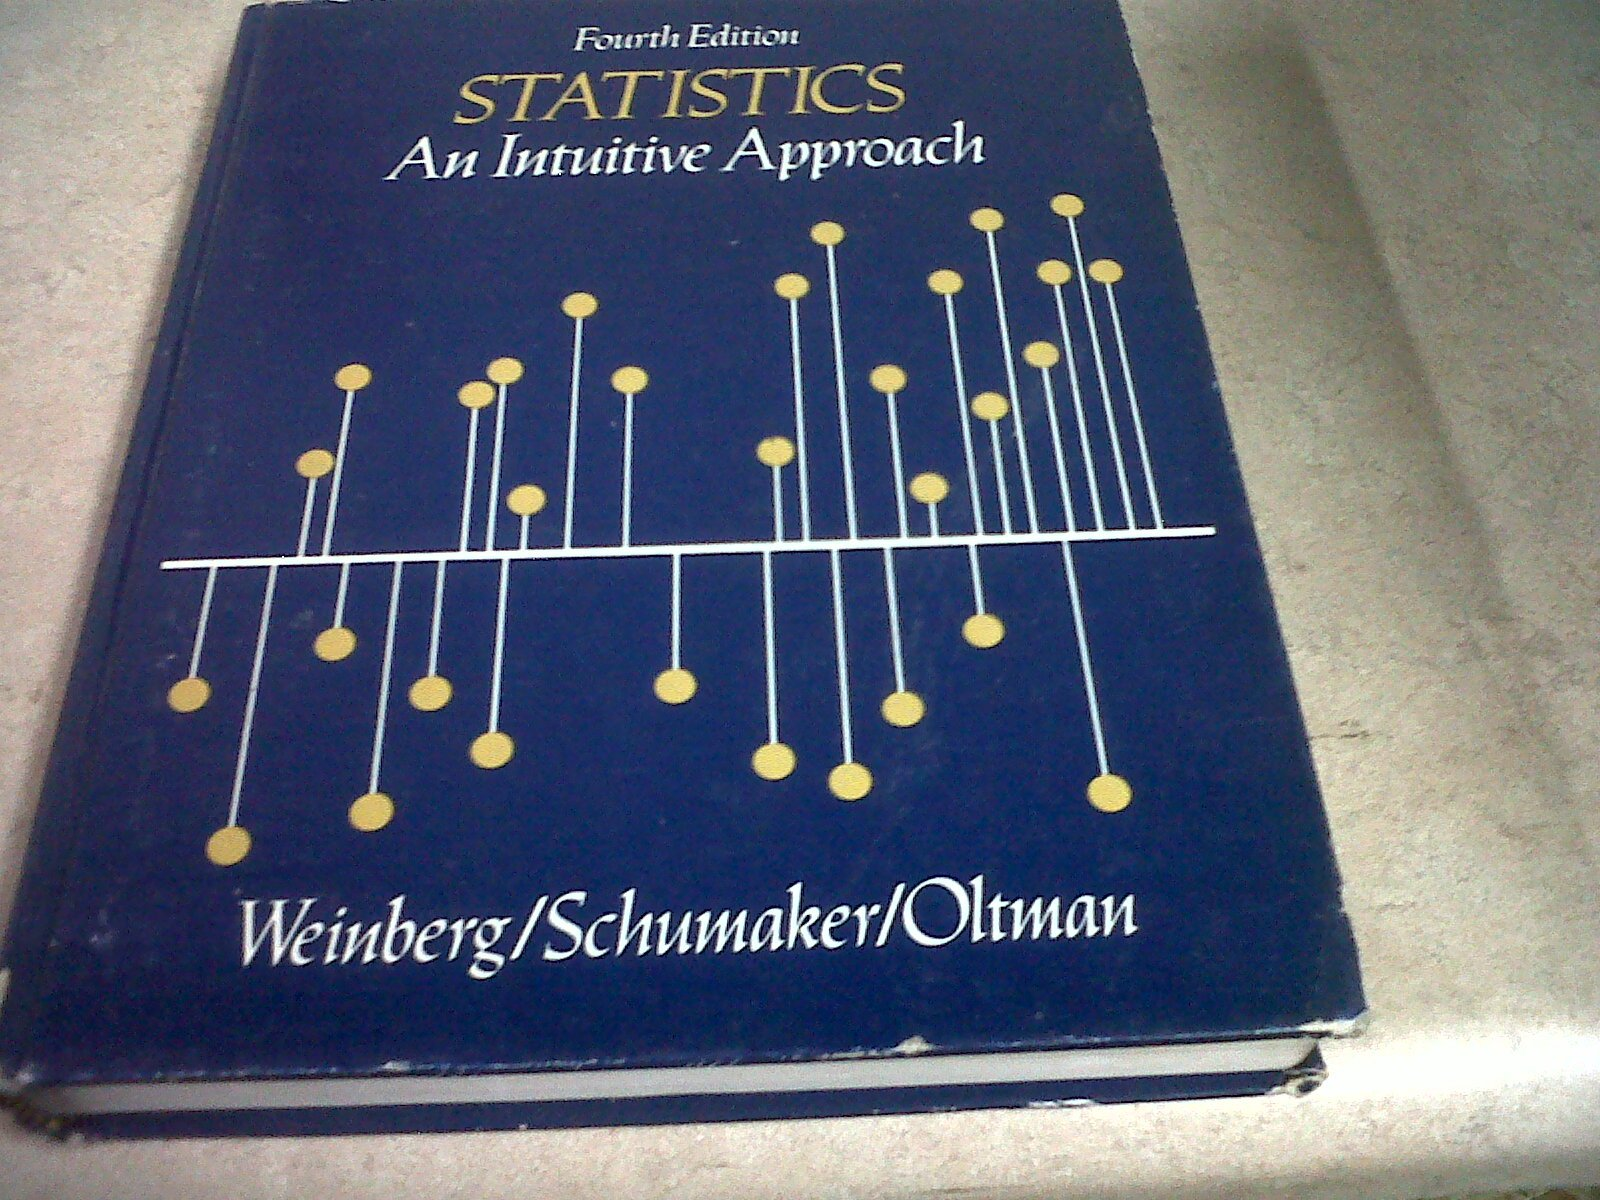 Statistics: An Intuitive Approach. Belmont, California: Brook's/Cole, fourth printing, 1981.